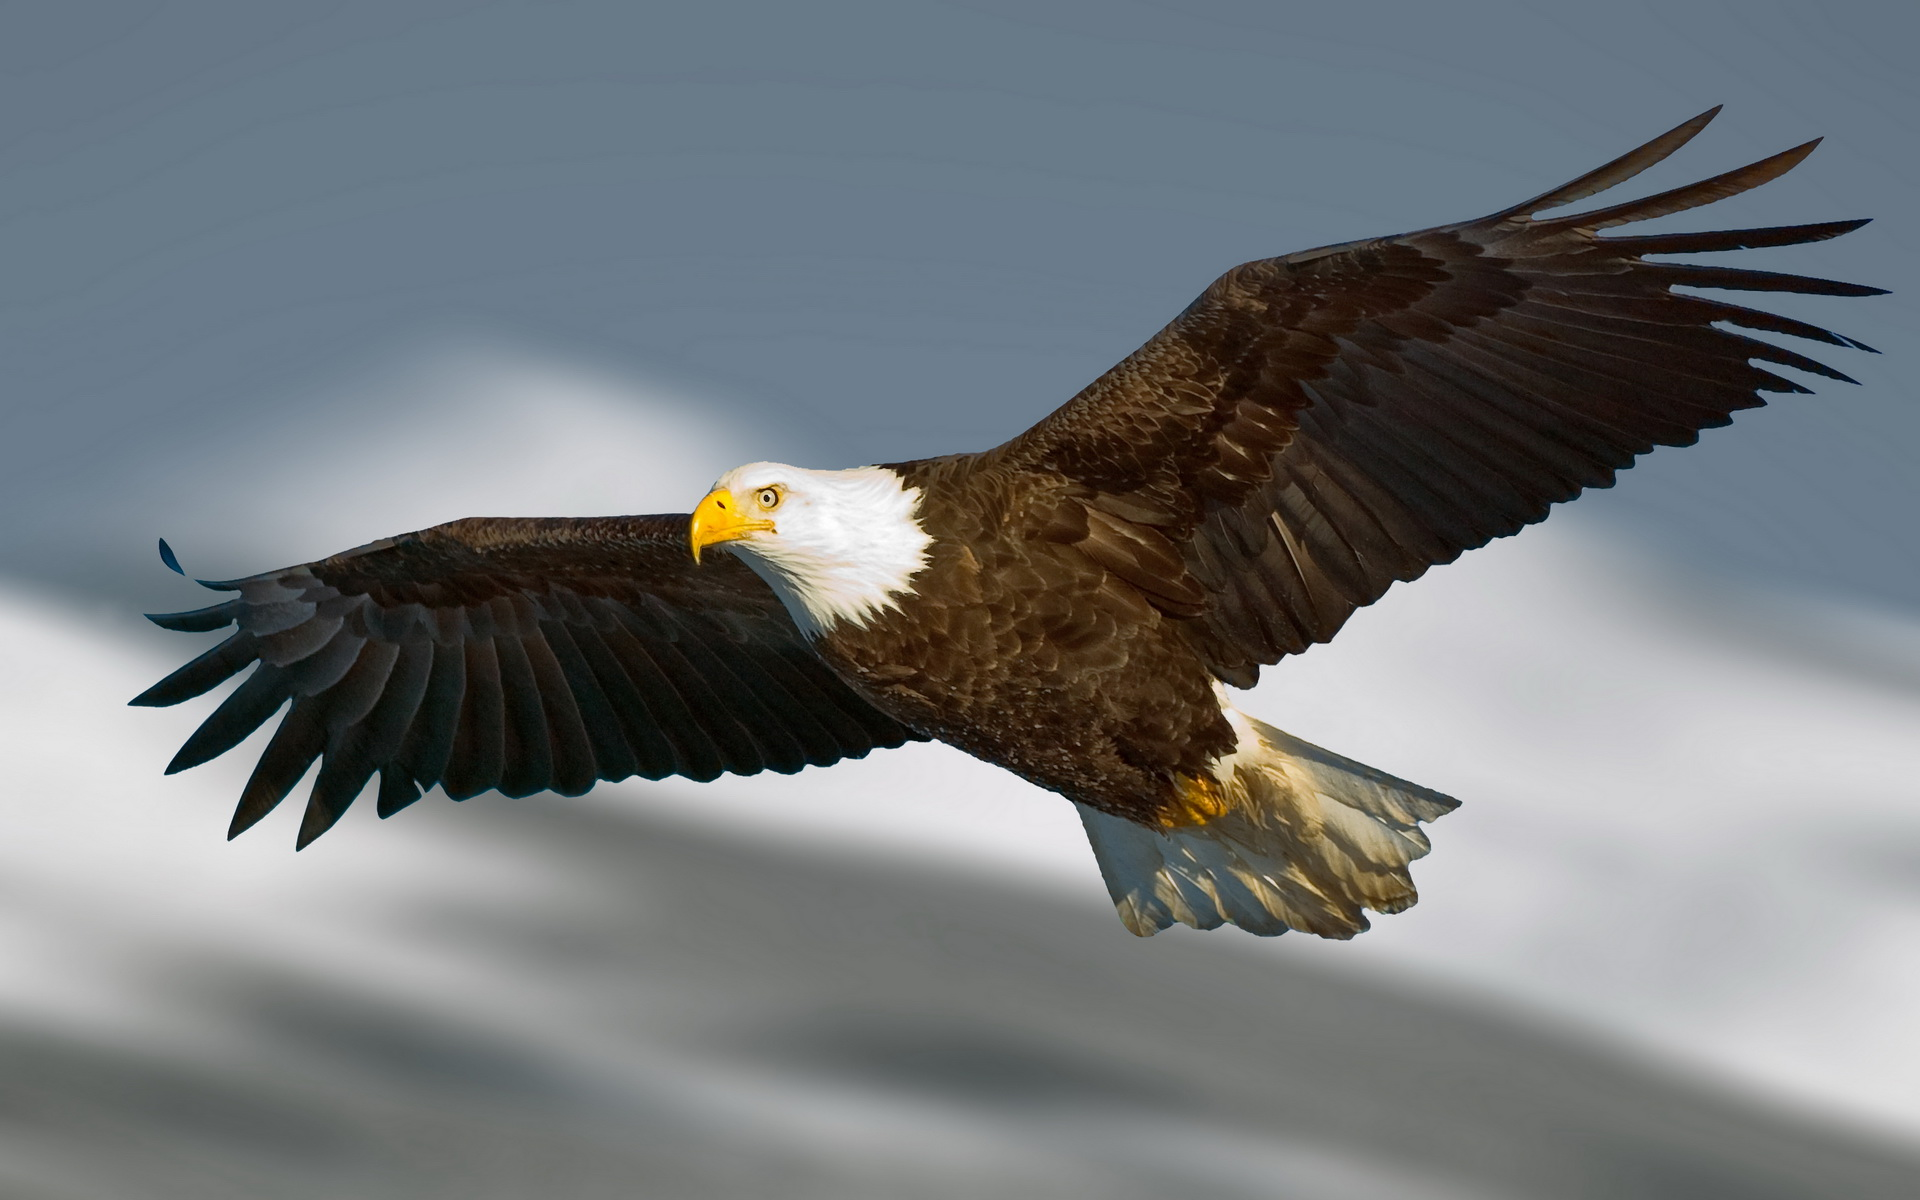 Wallpaper Abyss Ontdek De Collectie Vogelstand Eagles Bald Eagle